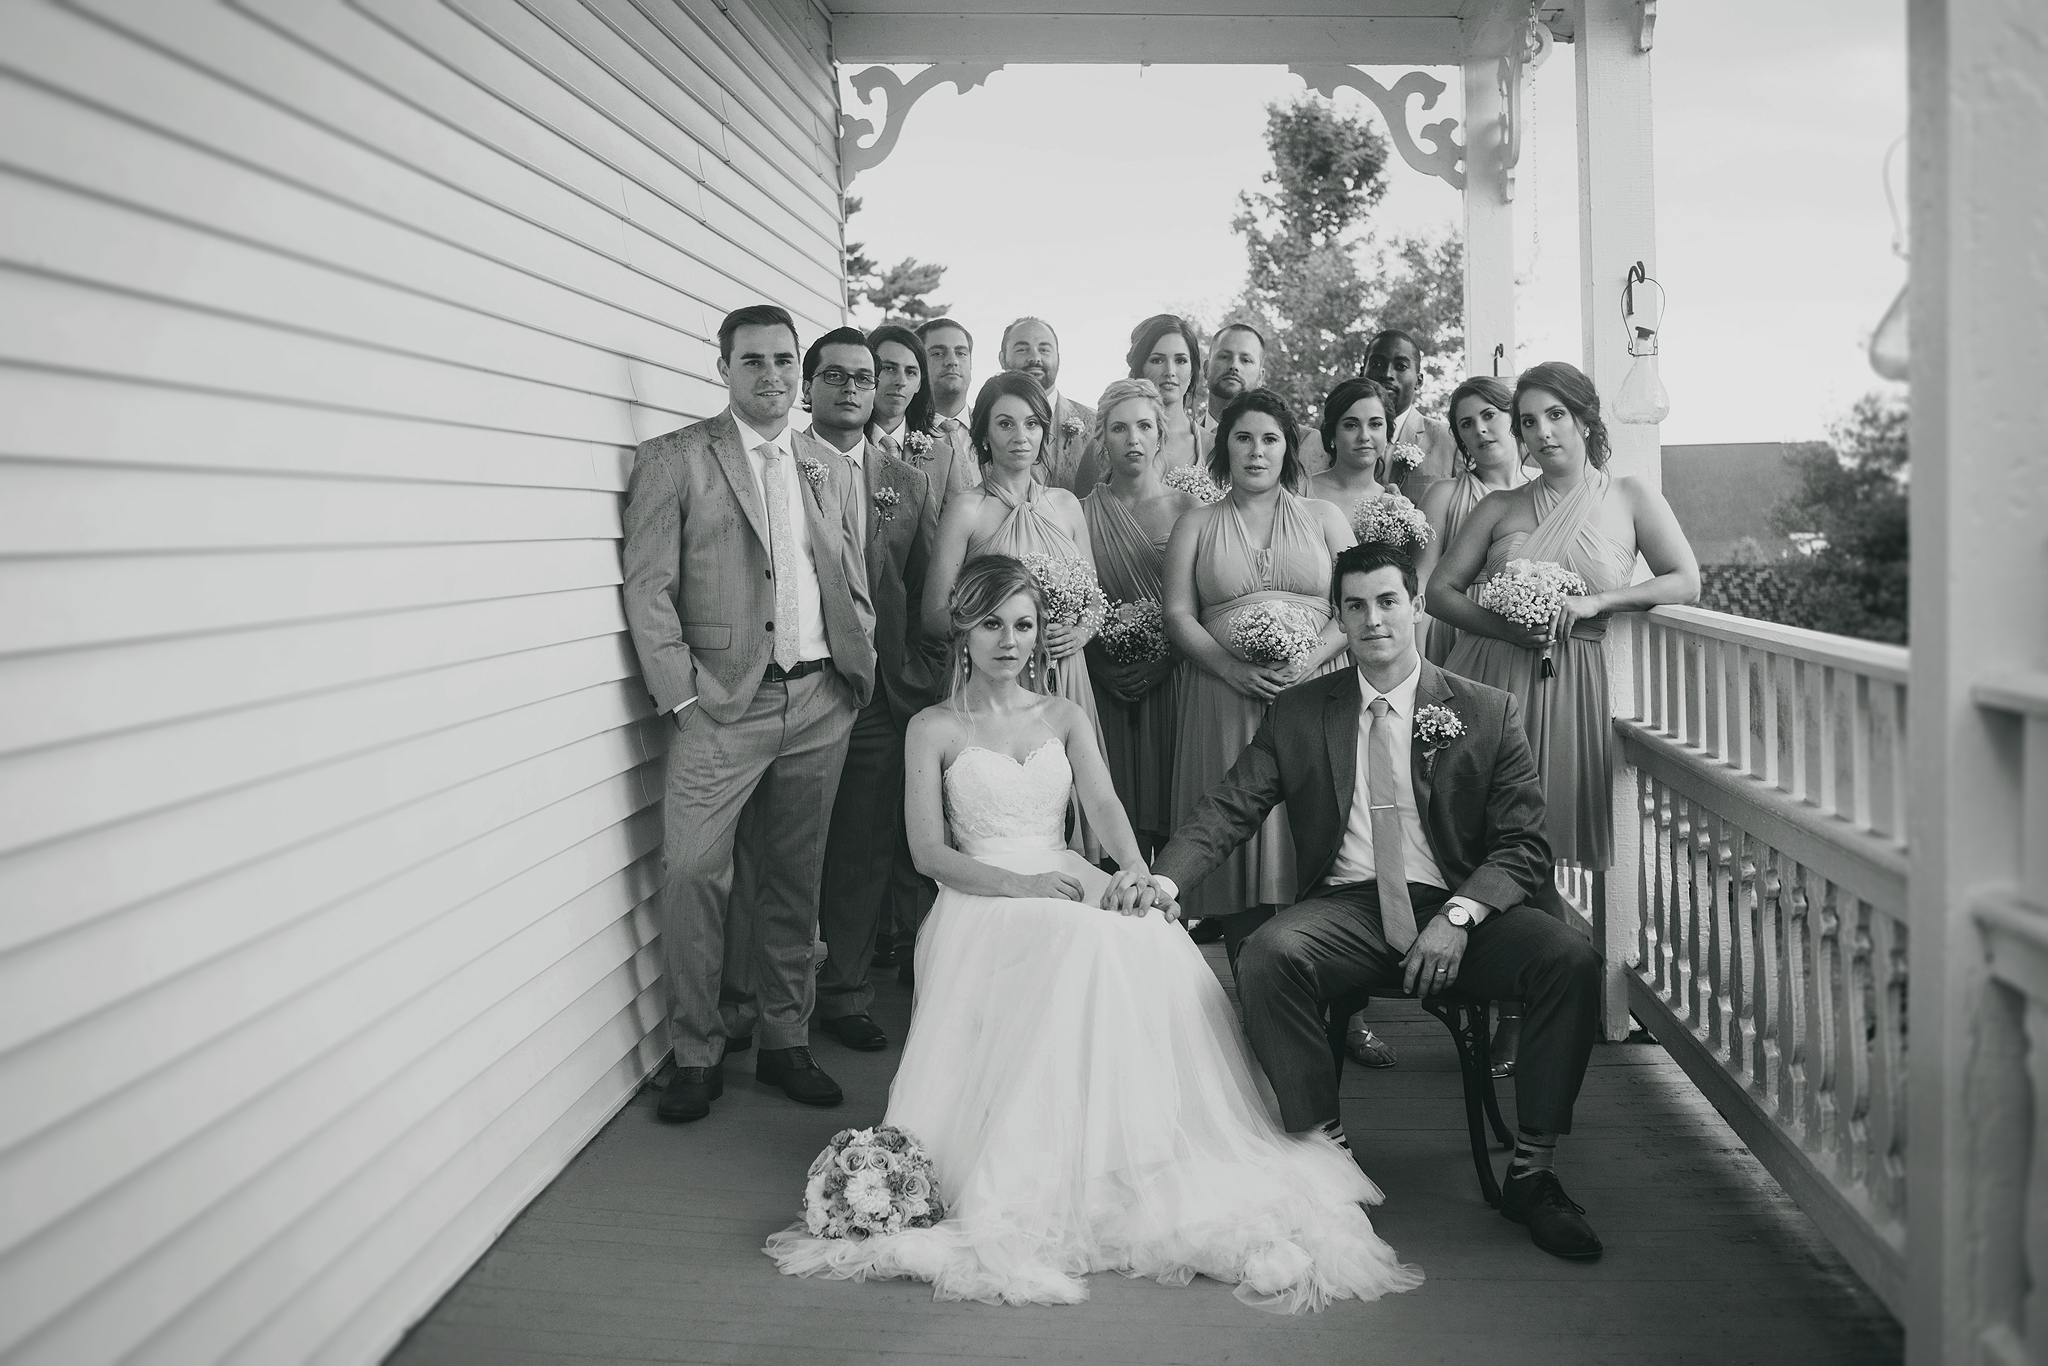 Cincinnati-Dayton-Wedding-Photographer-Dry-Ridge-KY-Josephina-Photography-161.jpg